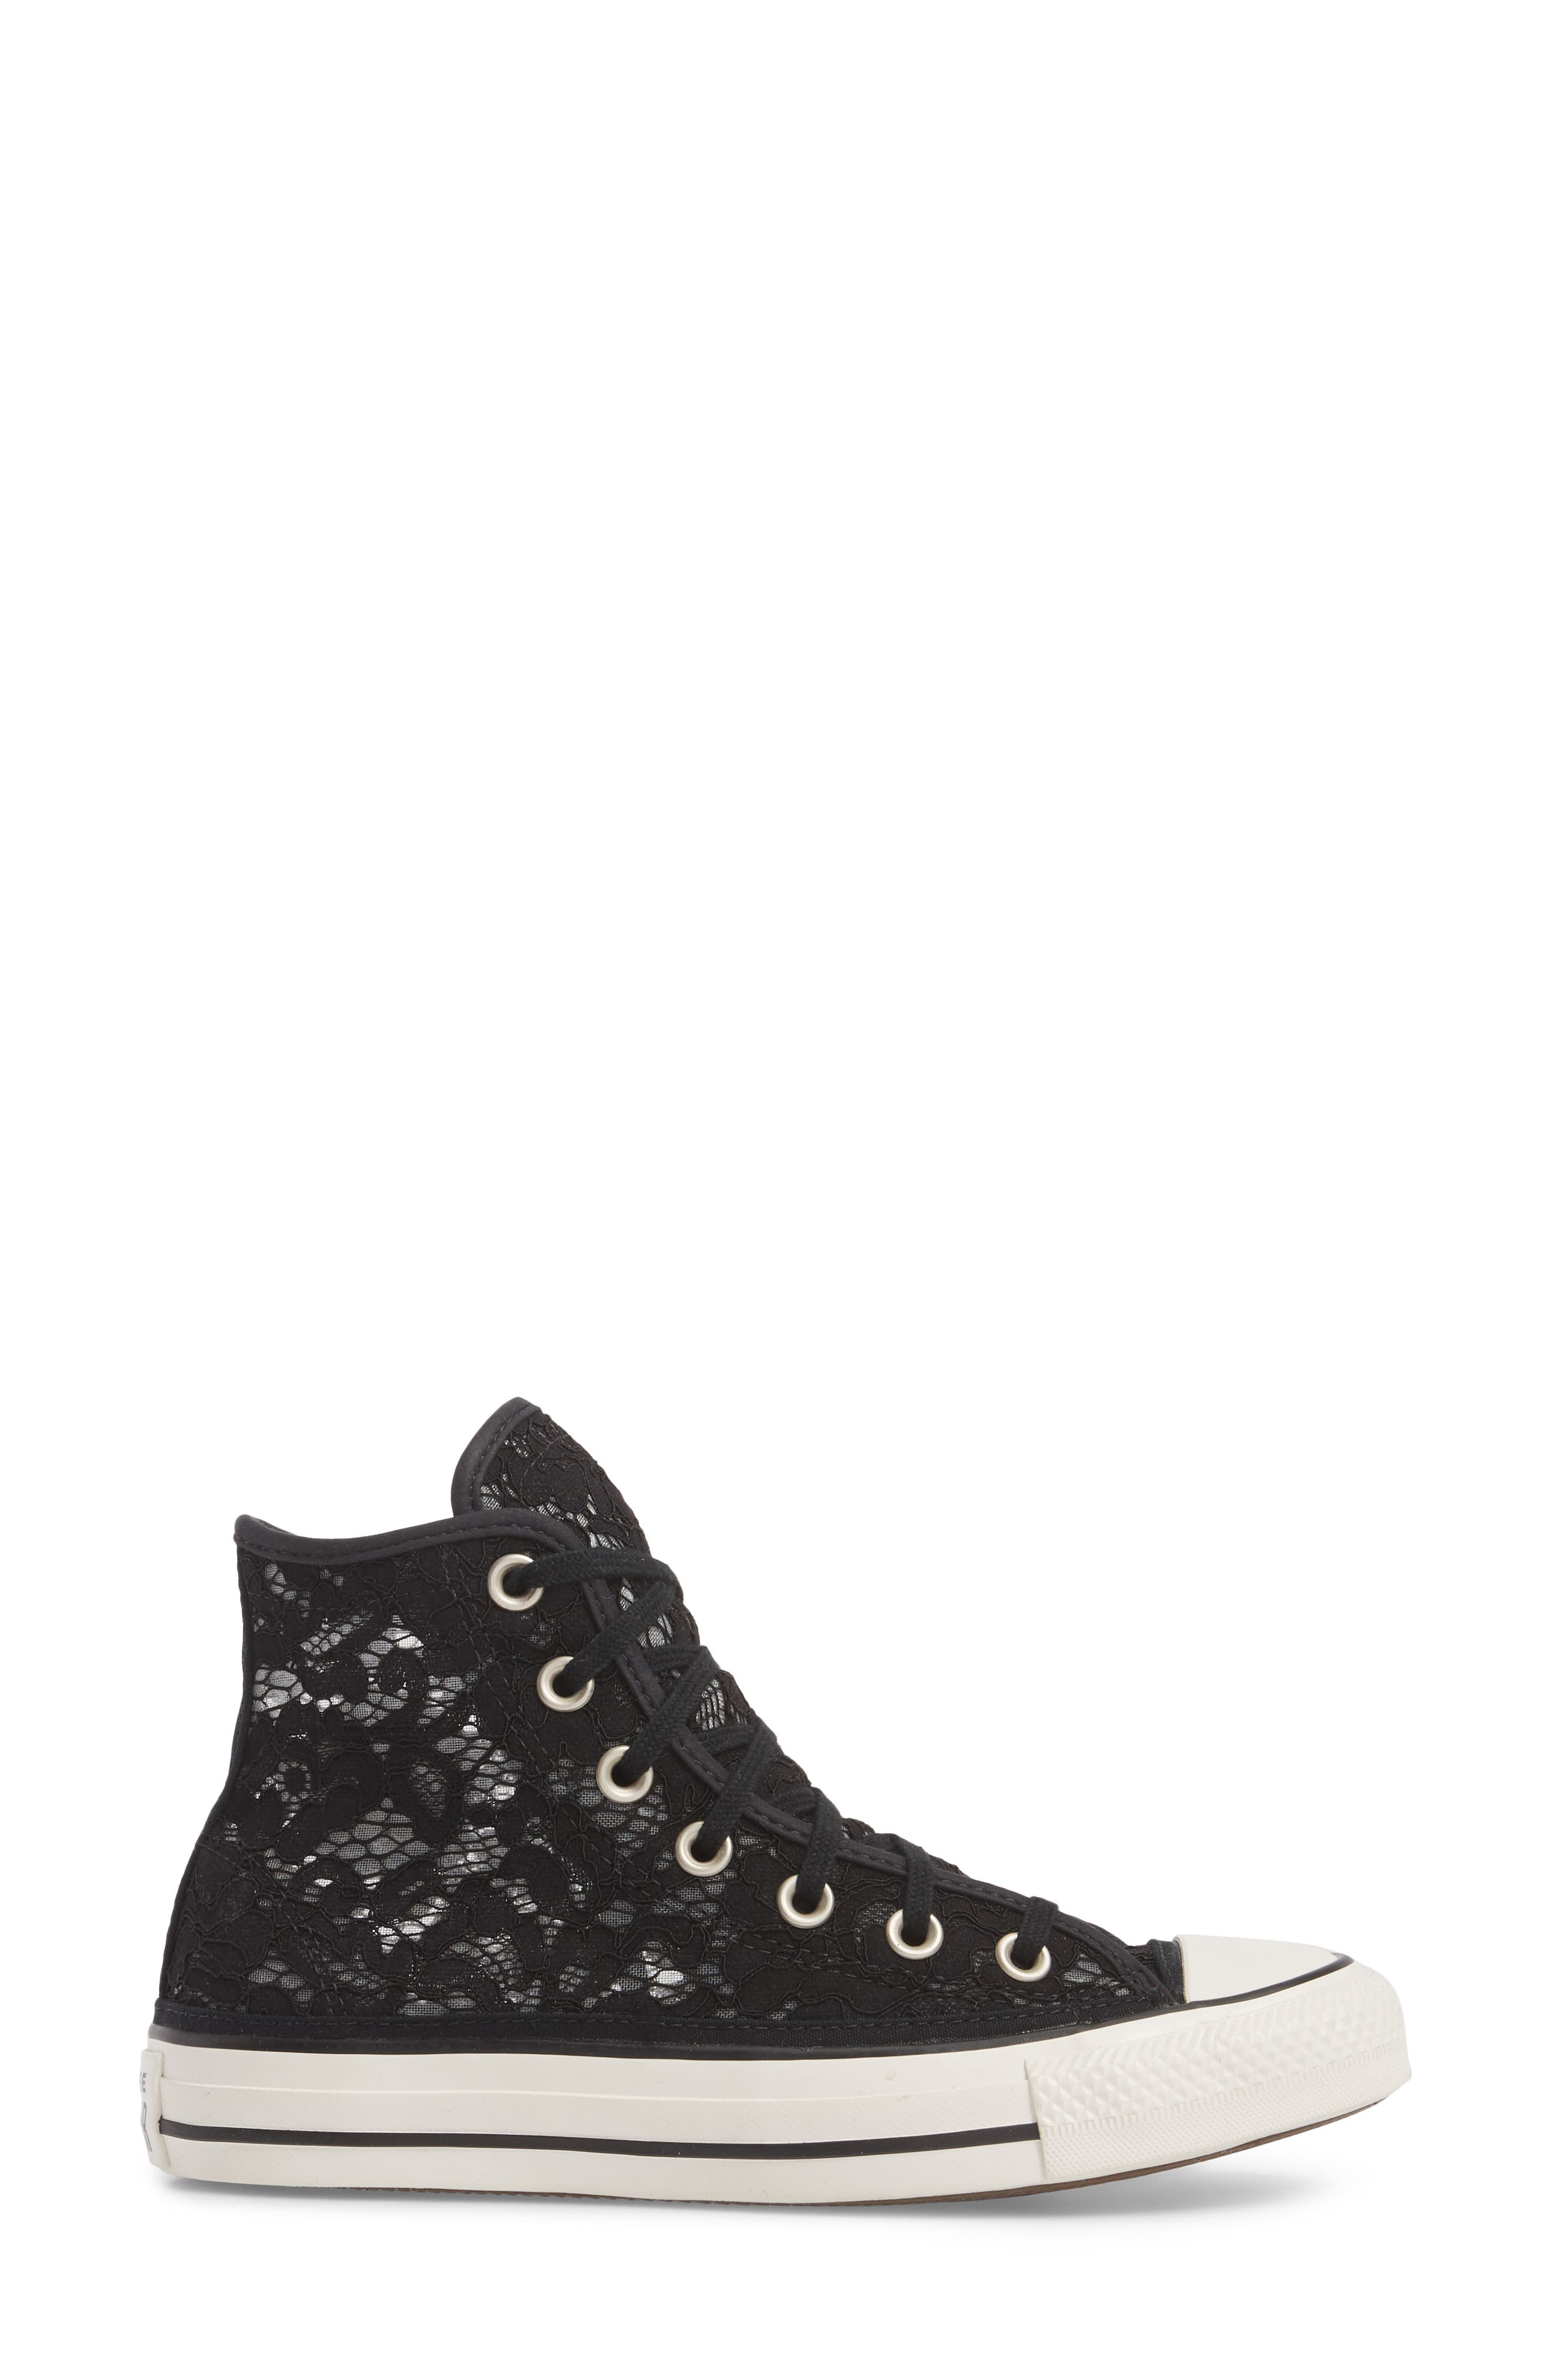 Chuck Taylor<sup>®</sup> All Star Lace High-Top Sneaker,                             Alternate thumbnail 3, color,                             001